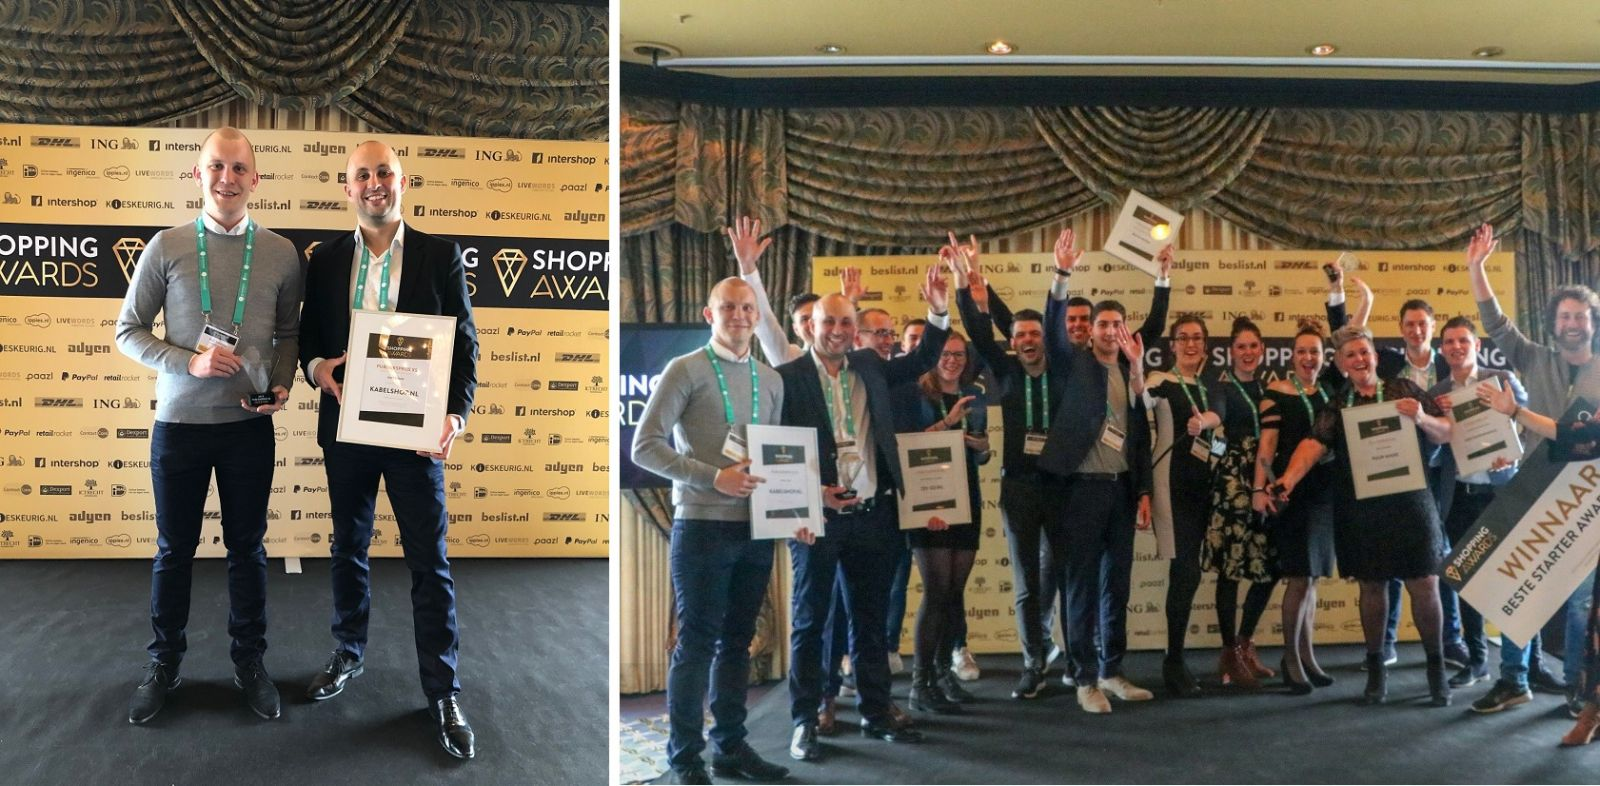 Winnaar Shopping Awards 2019! | Kabelshop.nl